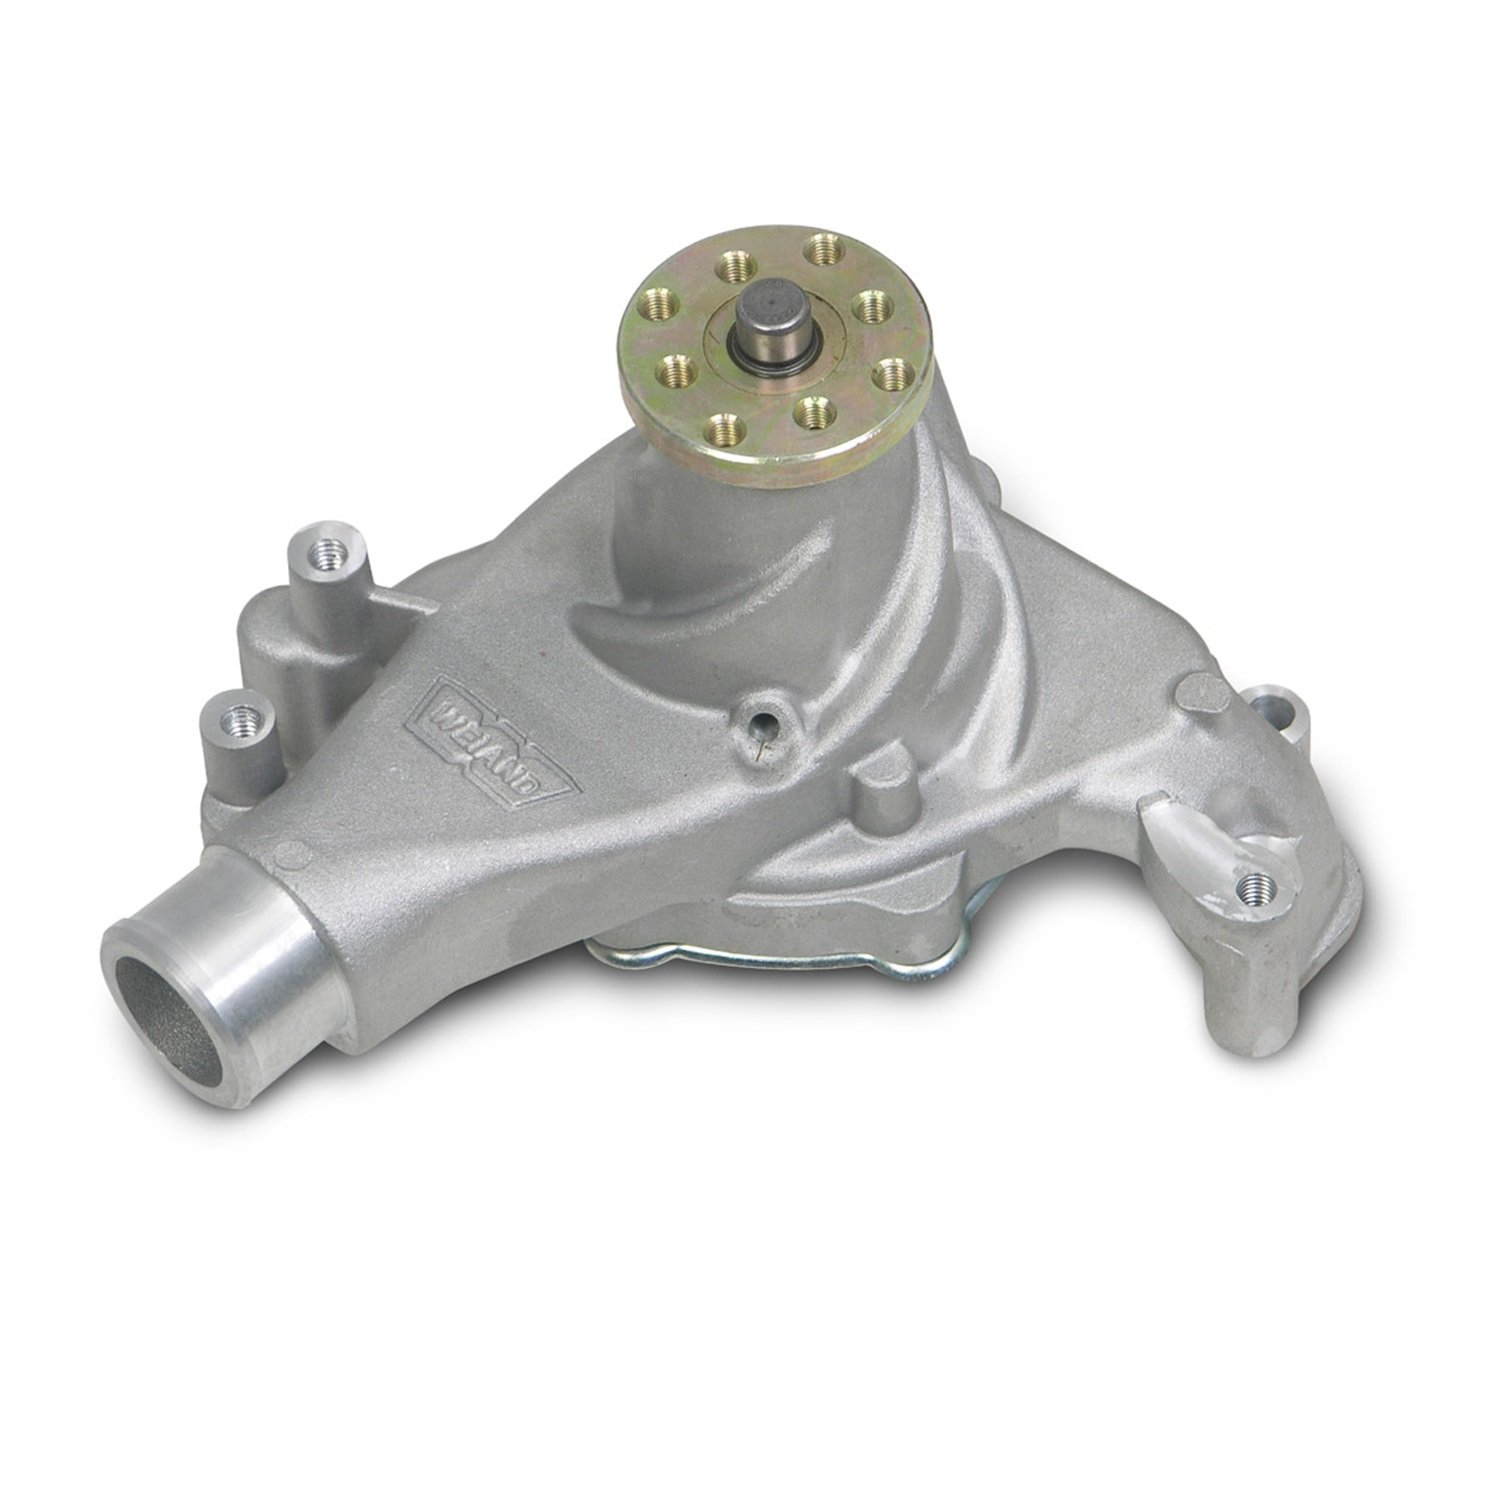 Weiand 9240 Action Plus Water Pump by Weiand